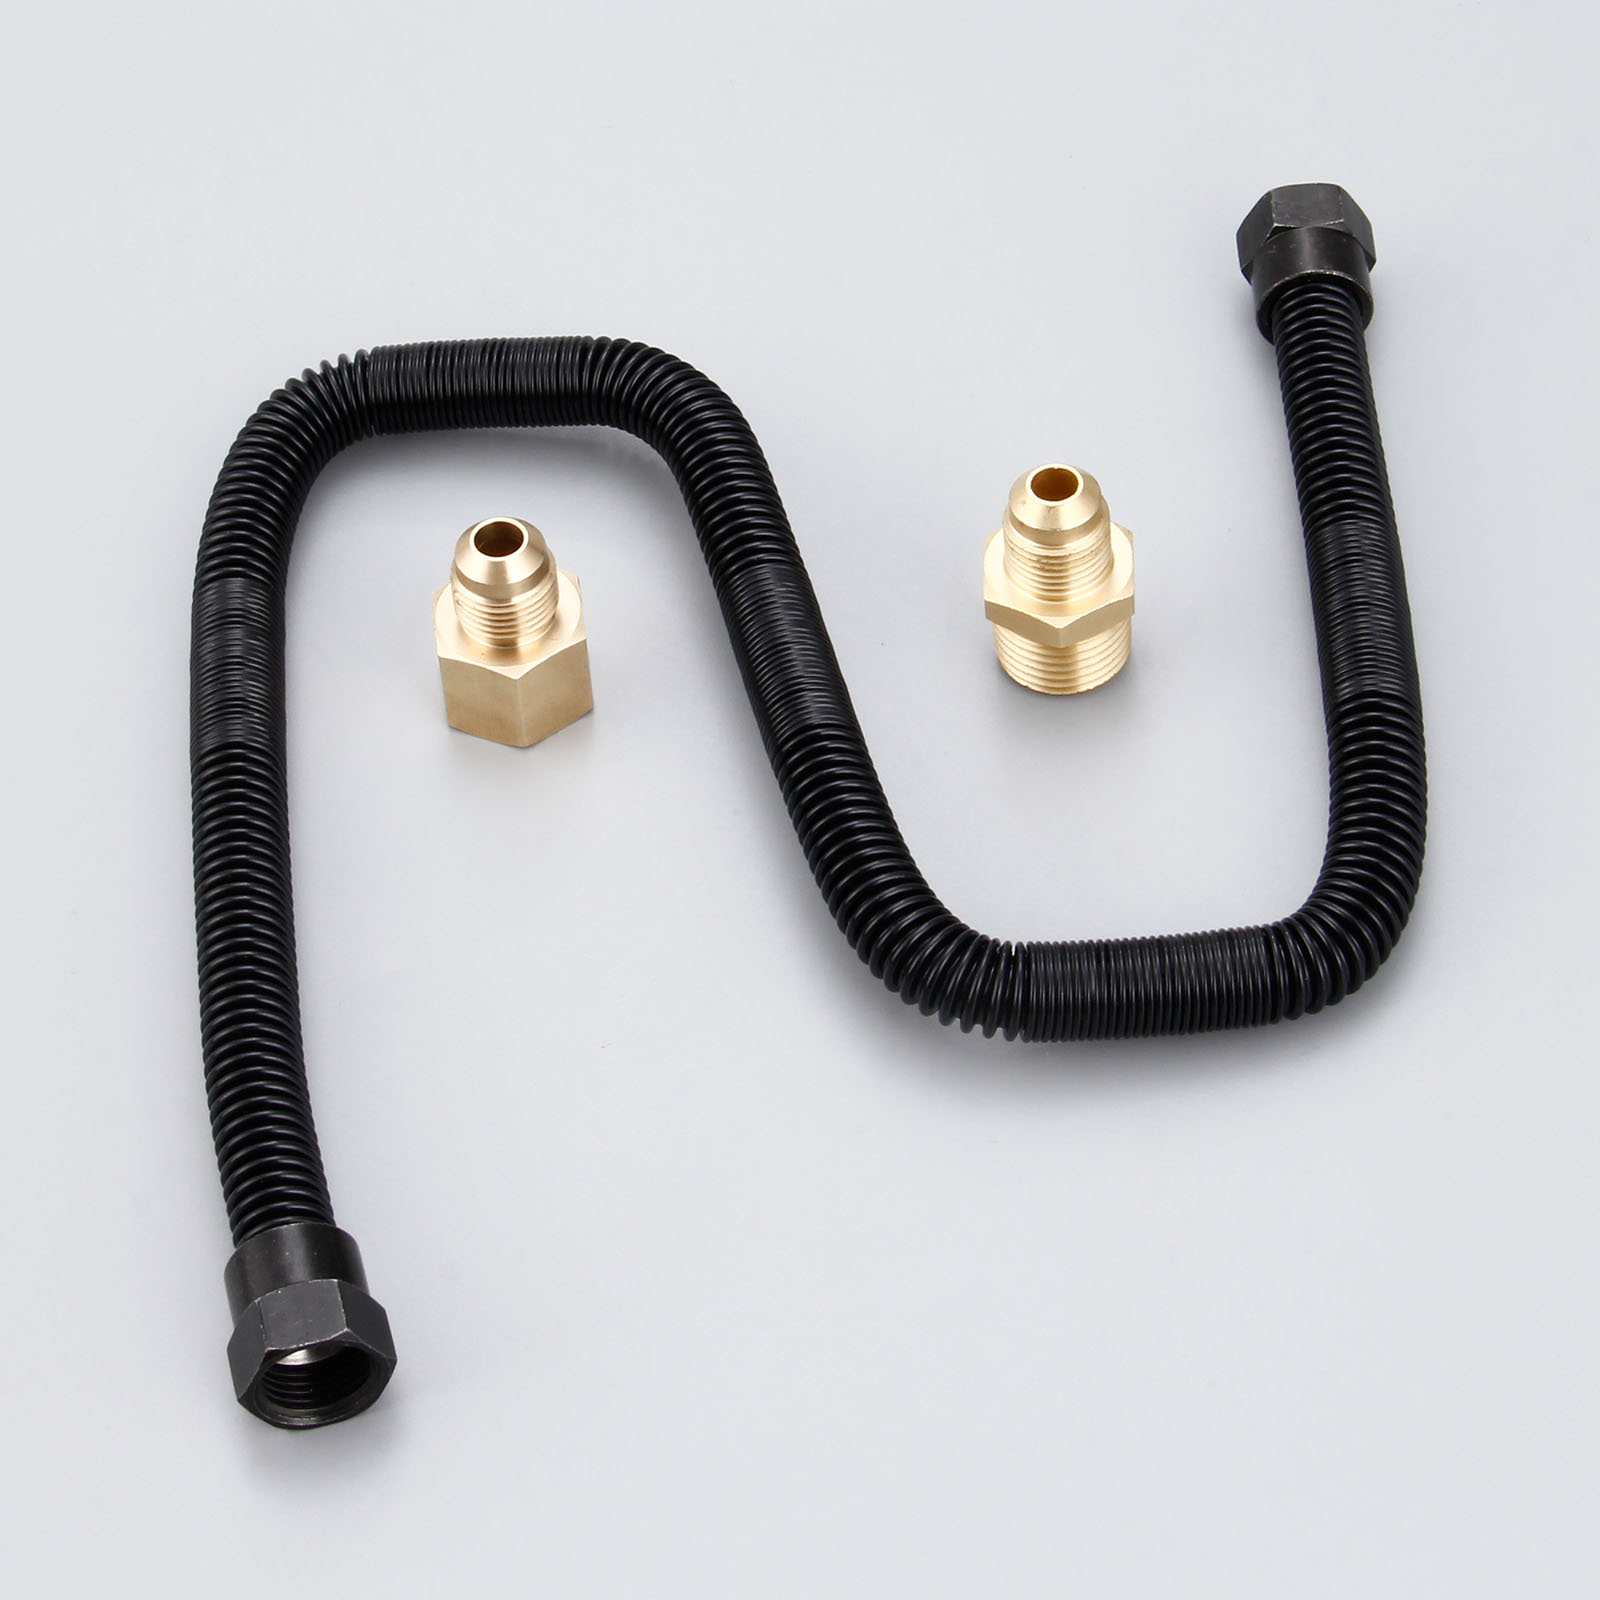 1//2 NPT Male x 1//2 NPT Female MENSI Whistle Free Gas Flex Line for Fire Pit and Fireplace Stainless Steel 24 Long